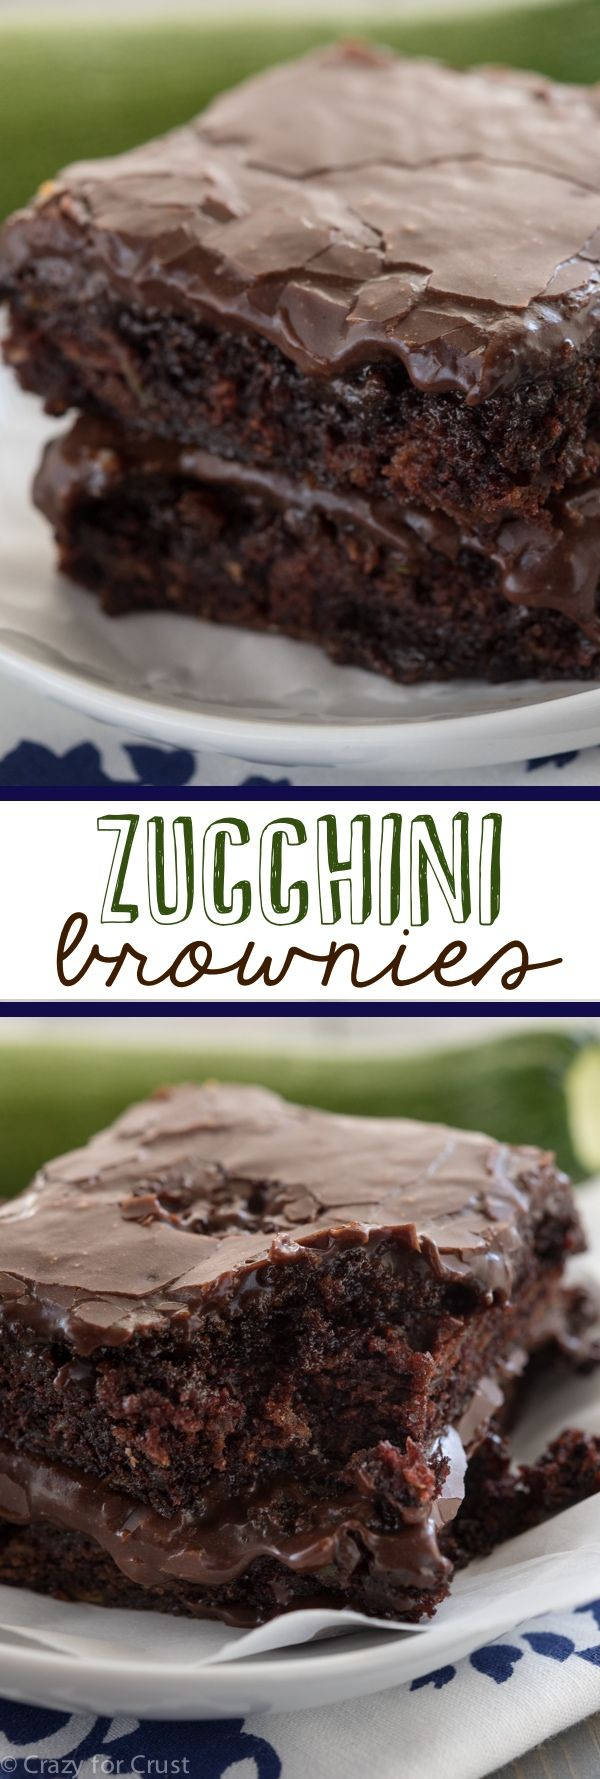 Zucchini Brownies  by crazyforcrust: The easiest recipe for the most gooey, chocolaty, fudgy brownies full of zucchini! And NO ONE will guess. #Brownies #Zucchini